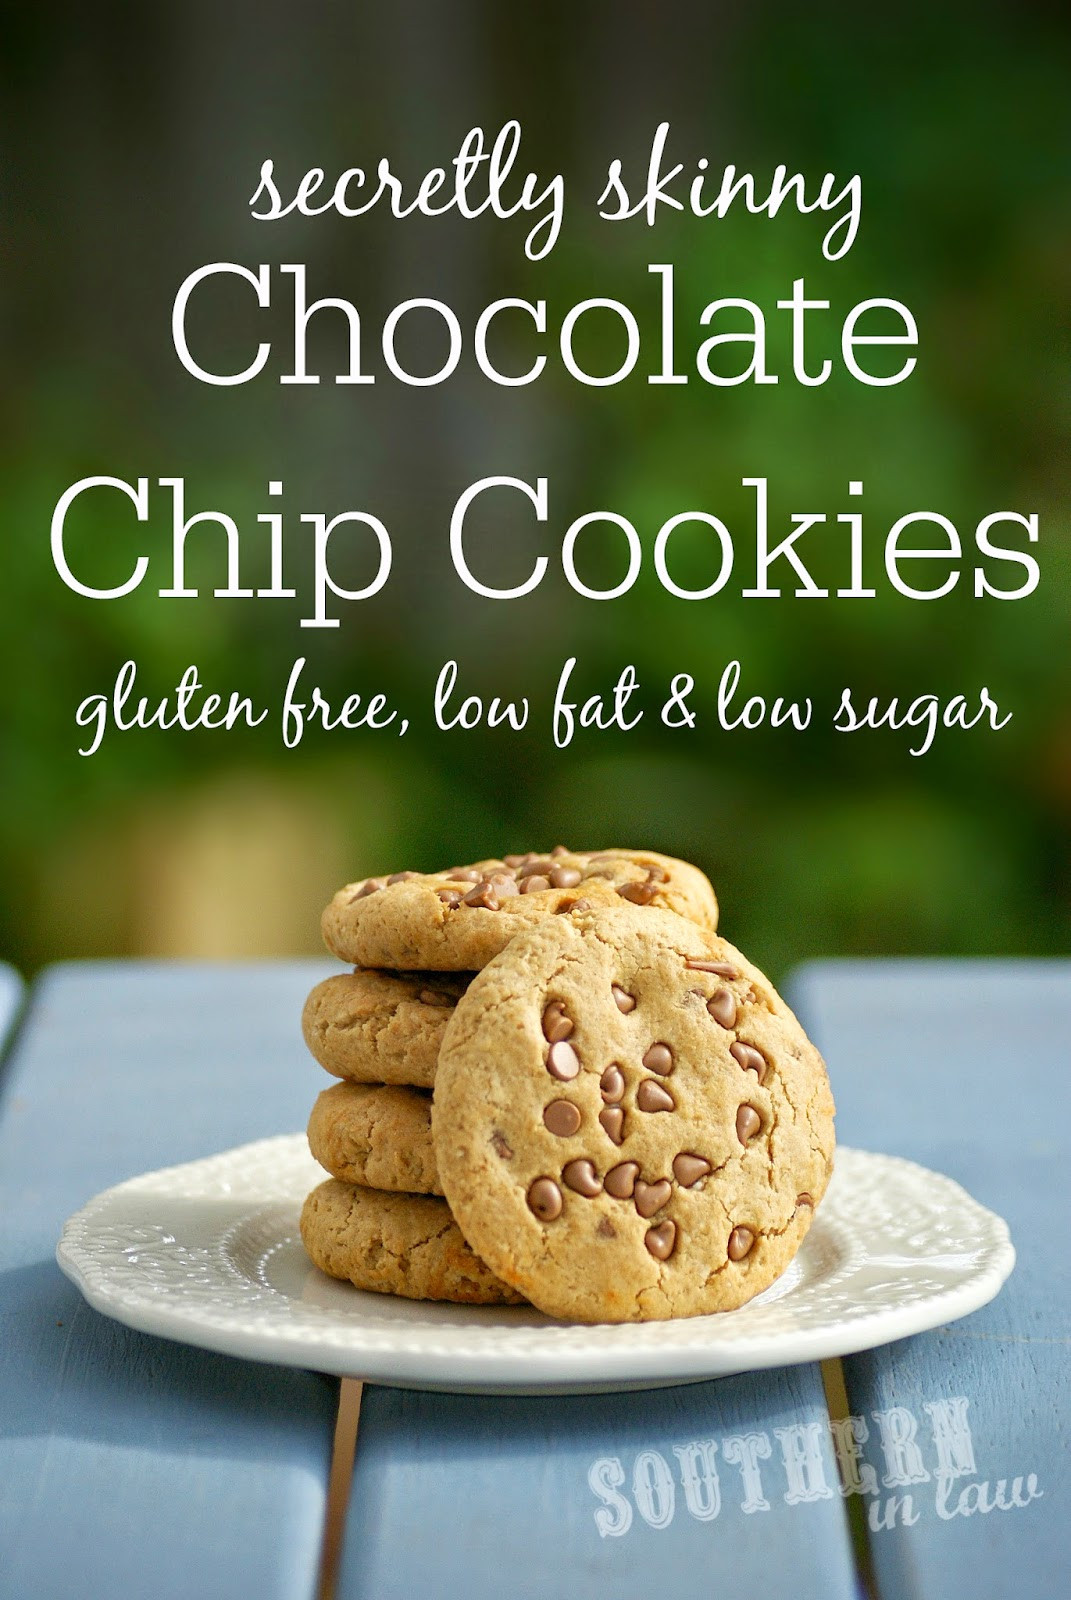 Low Fat Cookie Recipes  Southern In Law Recipe Secretly Skinny Chocolate Chip